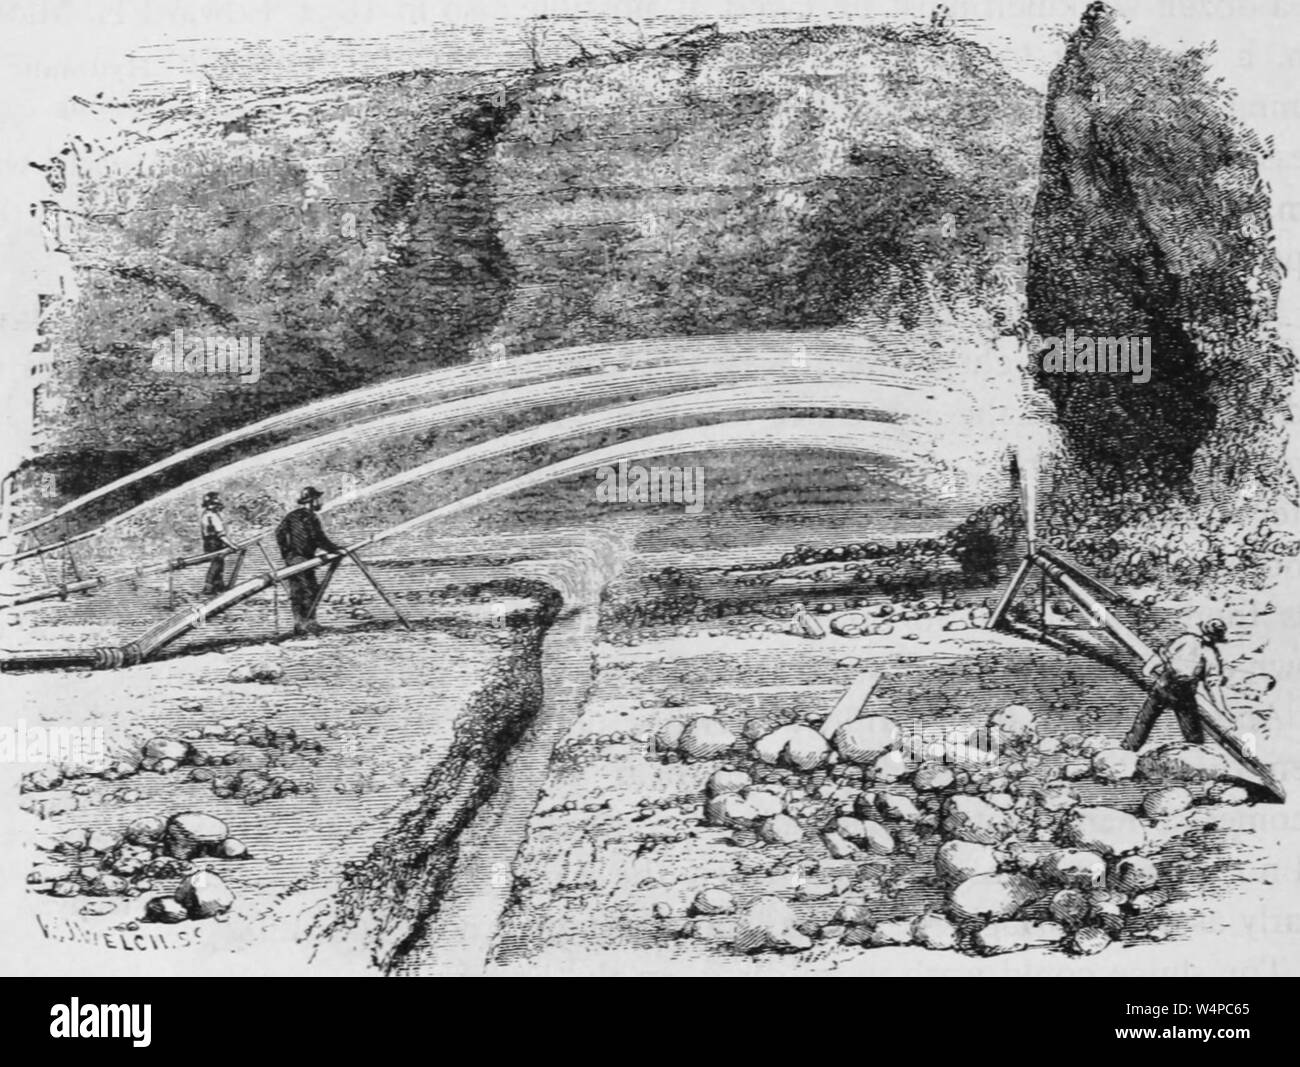 Gold Miner Black and White Stock Photos & Images - Alamy